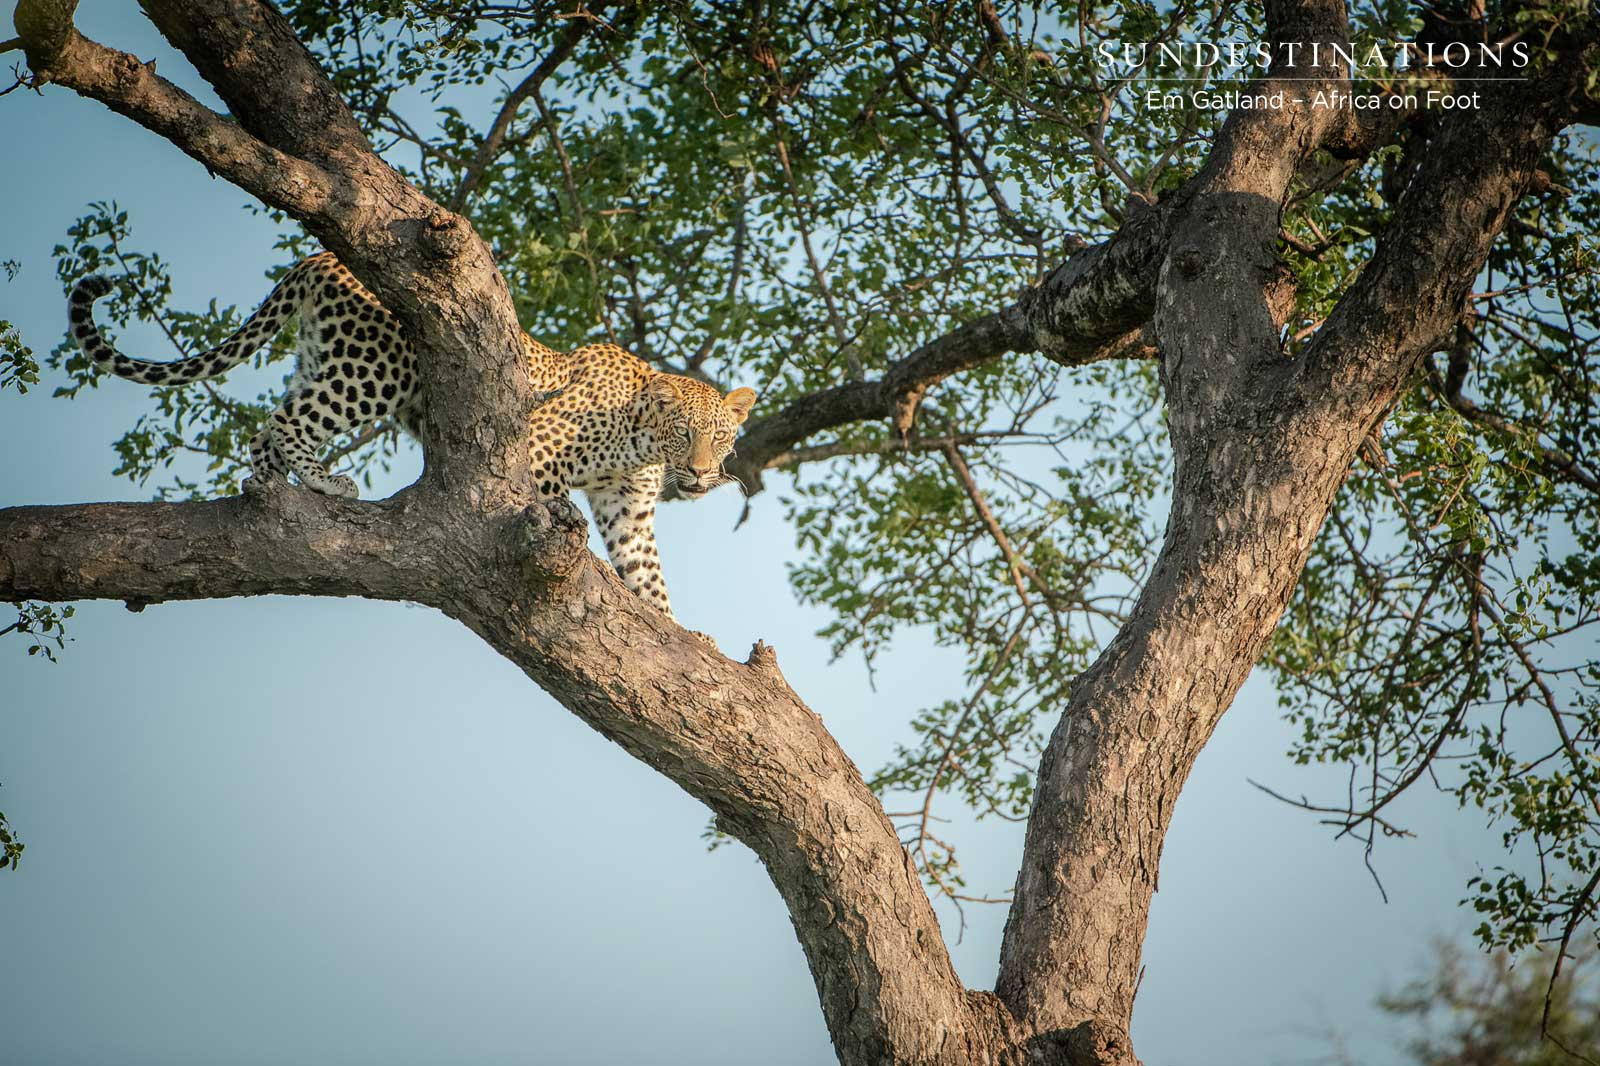 Leopards of Africa on Foot